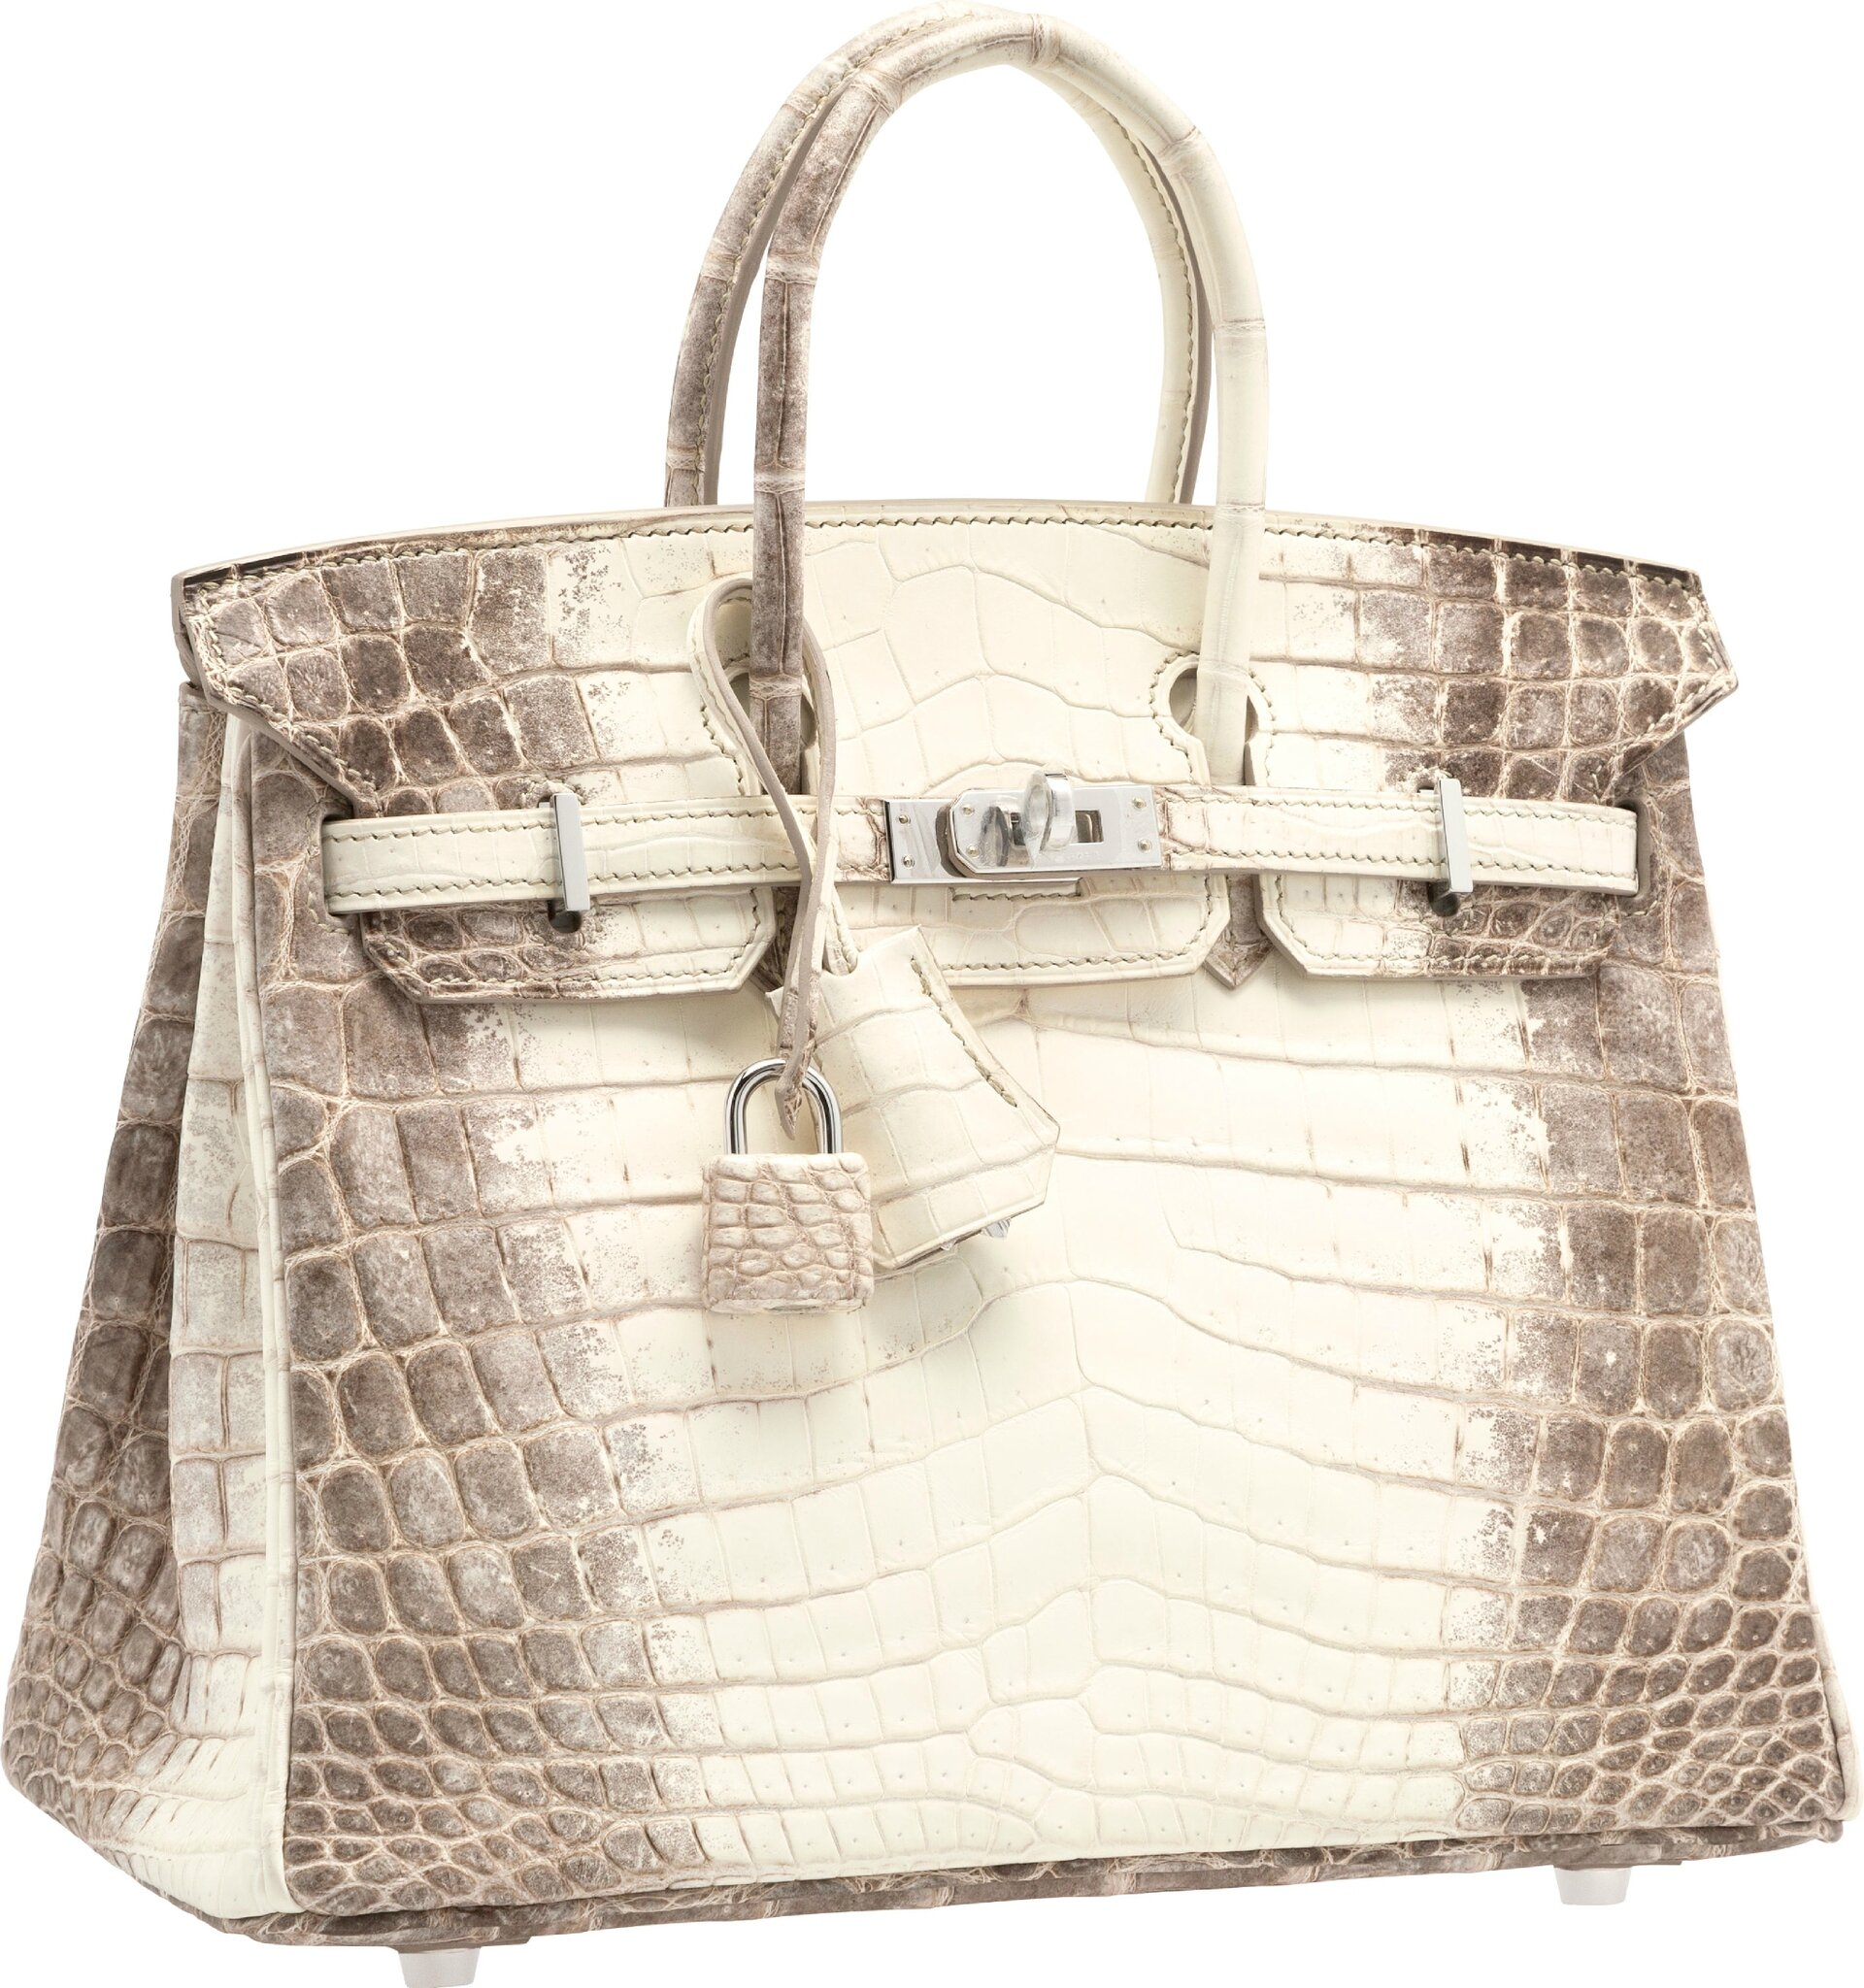 d3862b6c3645 Exceptional Chanel 'Diamond Forever' Flap Bag sparkles in New York ...